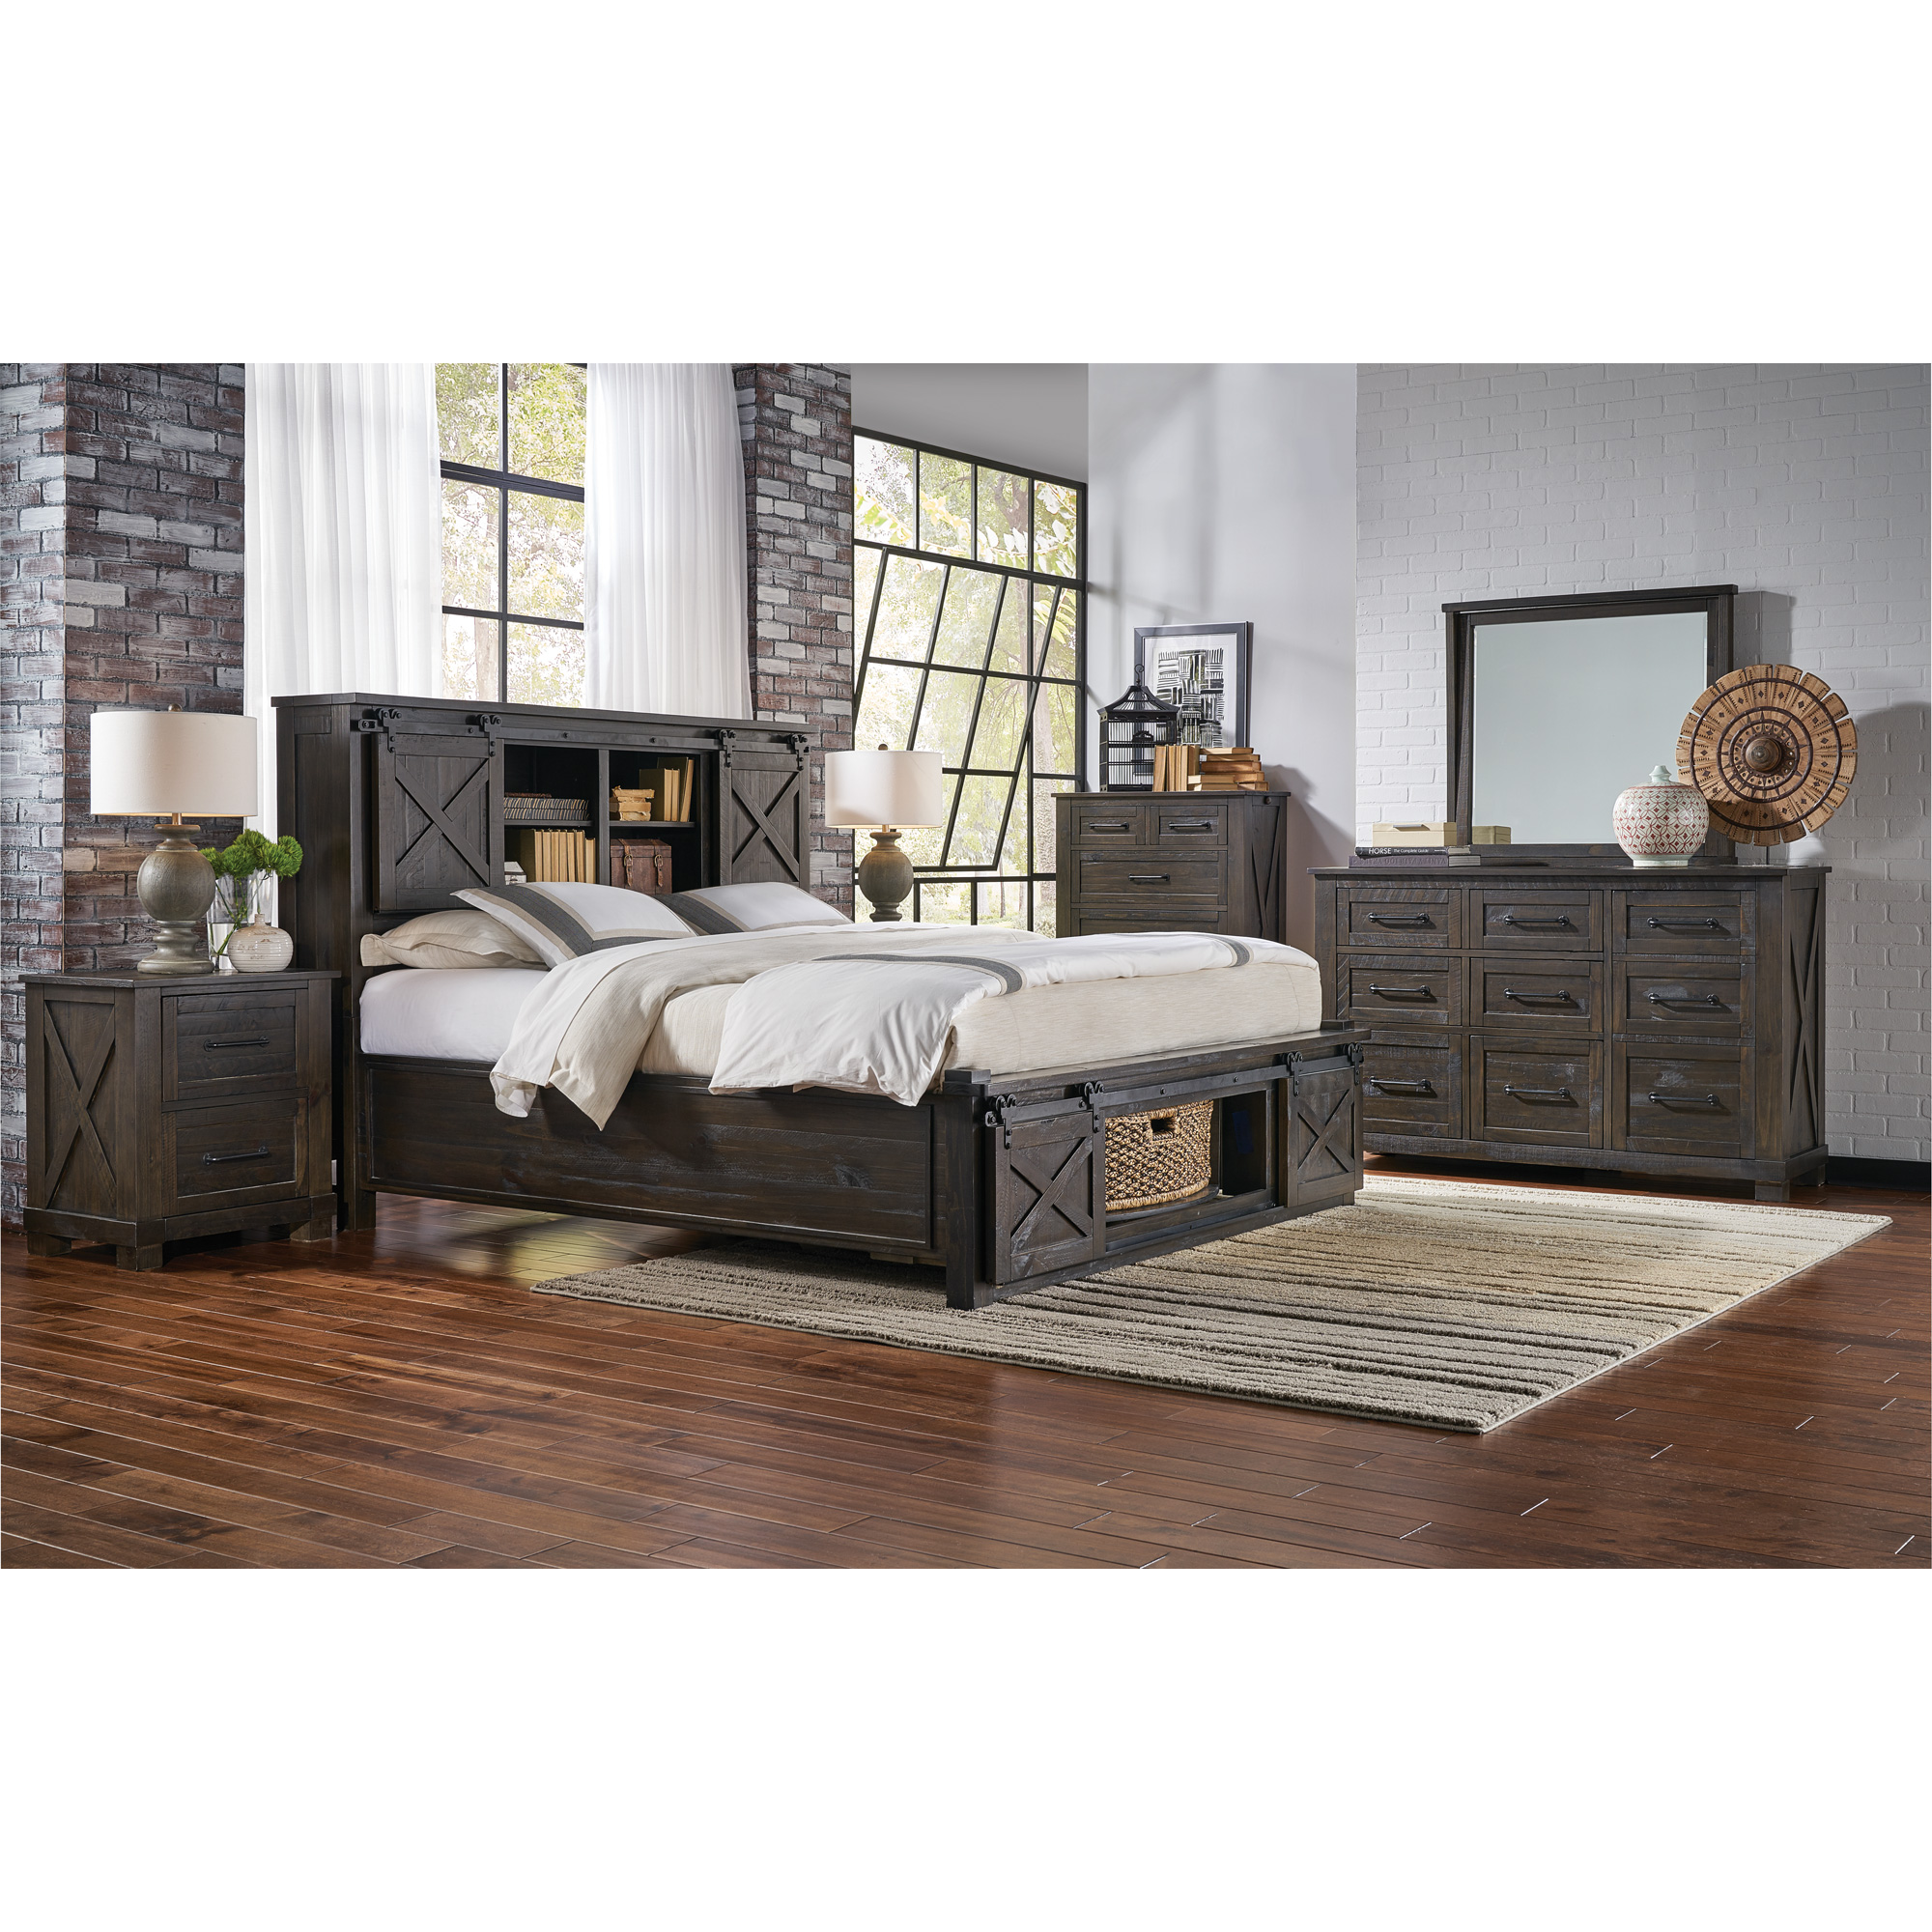 America | Sun Valley Charcoal Rotating Storage 4 Piece Room Group Bedroom Set